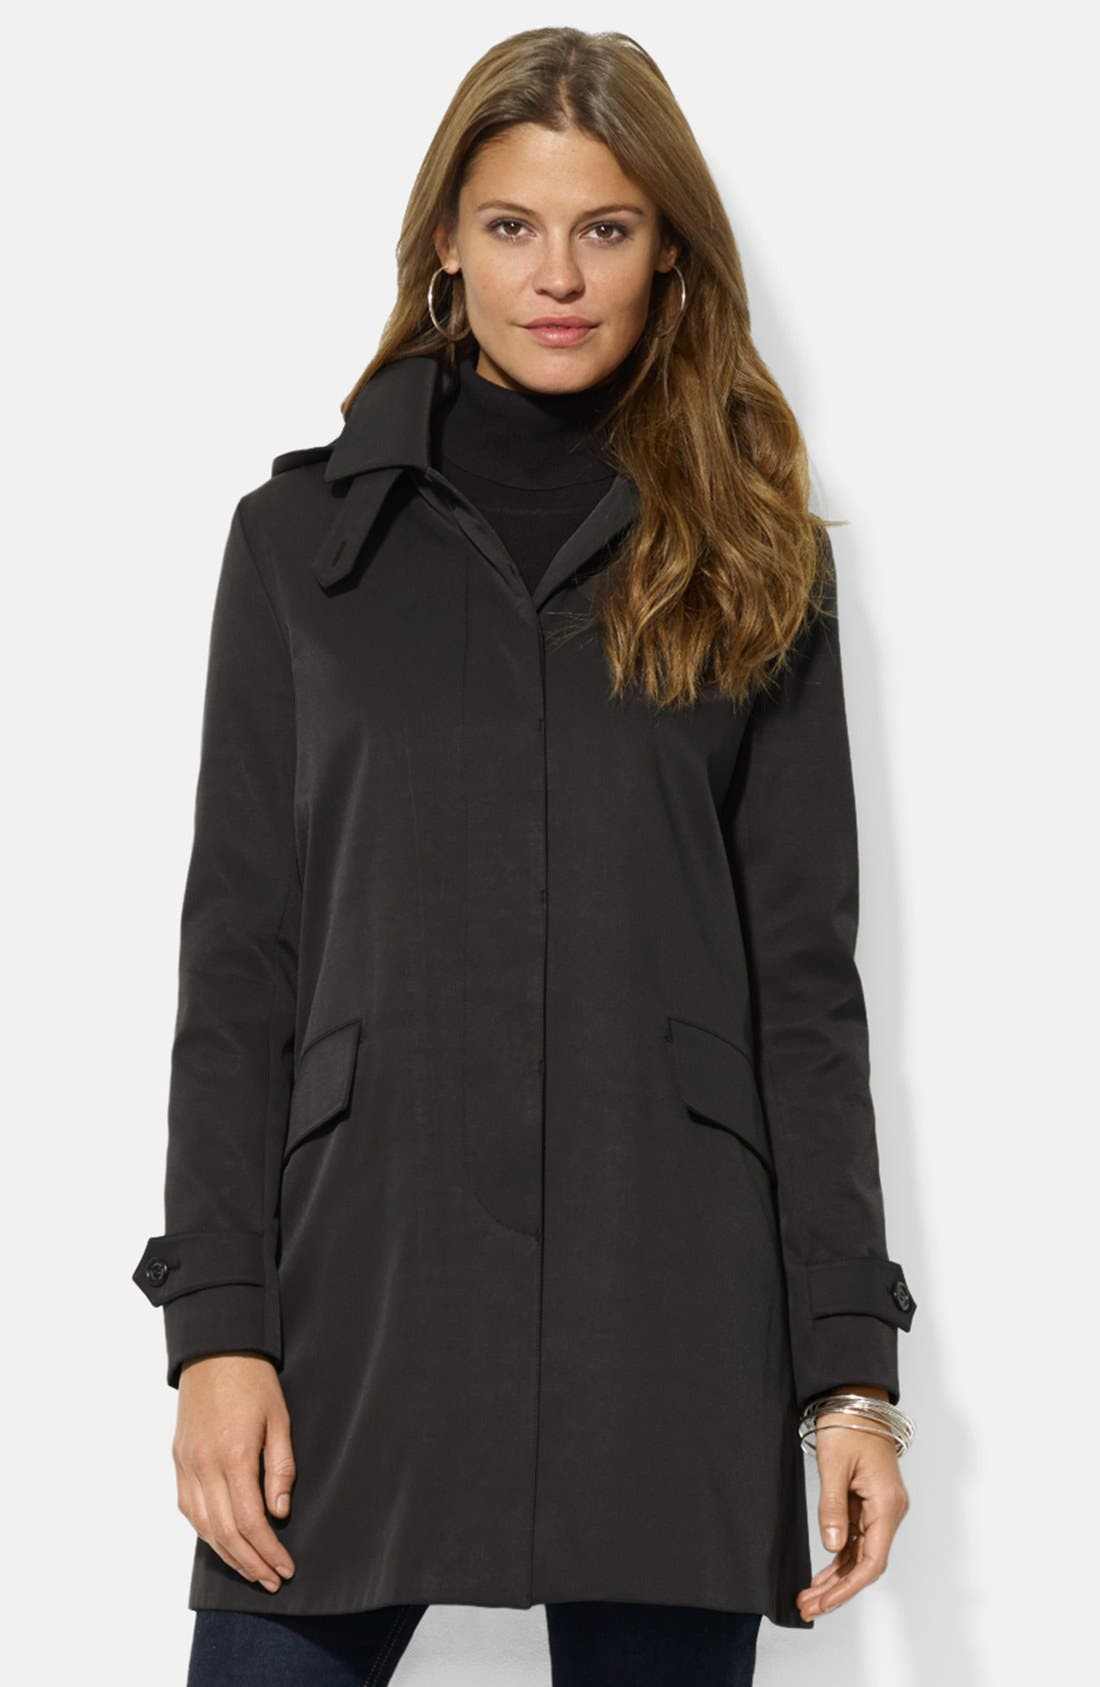 Main Image - Lauren Ralph Lauren Rain Jacket with Detachable Hood & Liner (Nordstrom Exclusive)